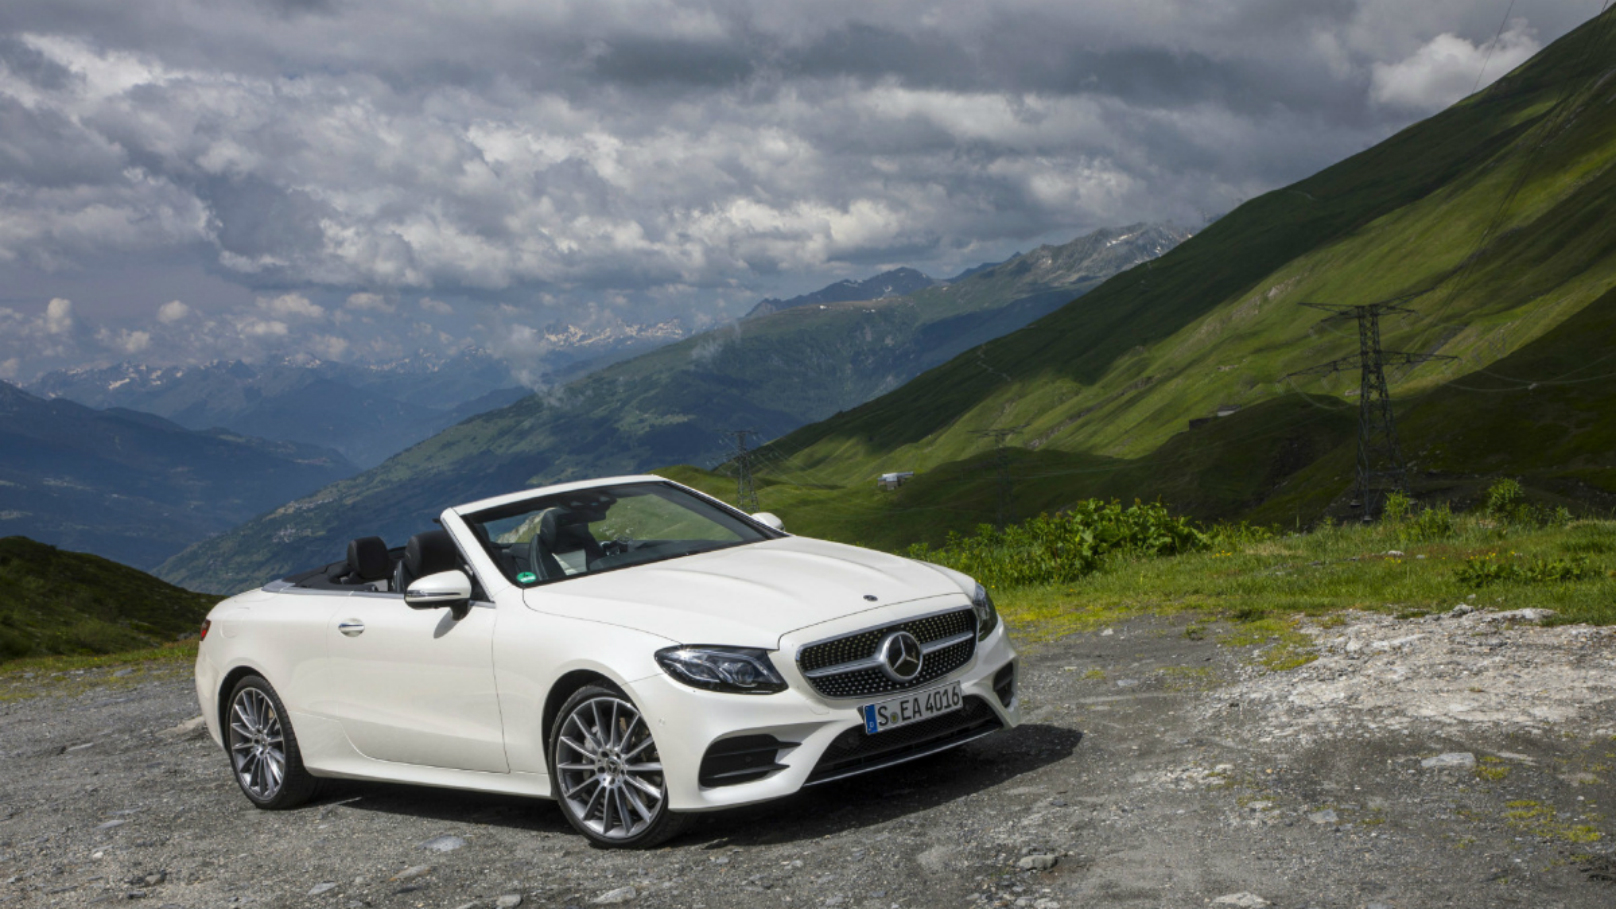 Mercedes-Benz E-Class: Important safety notes